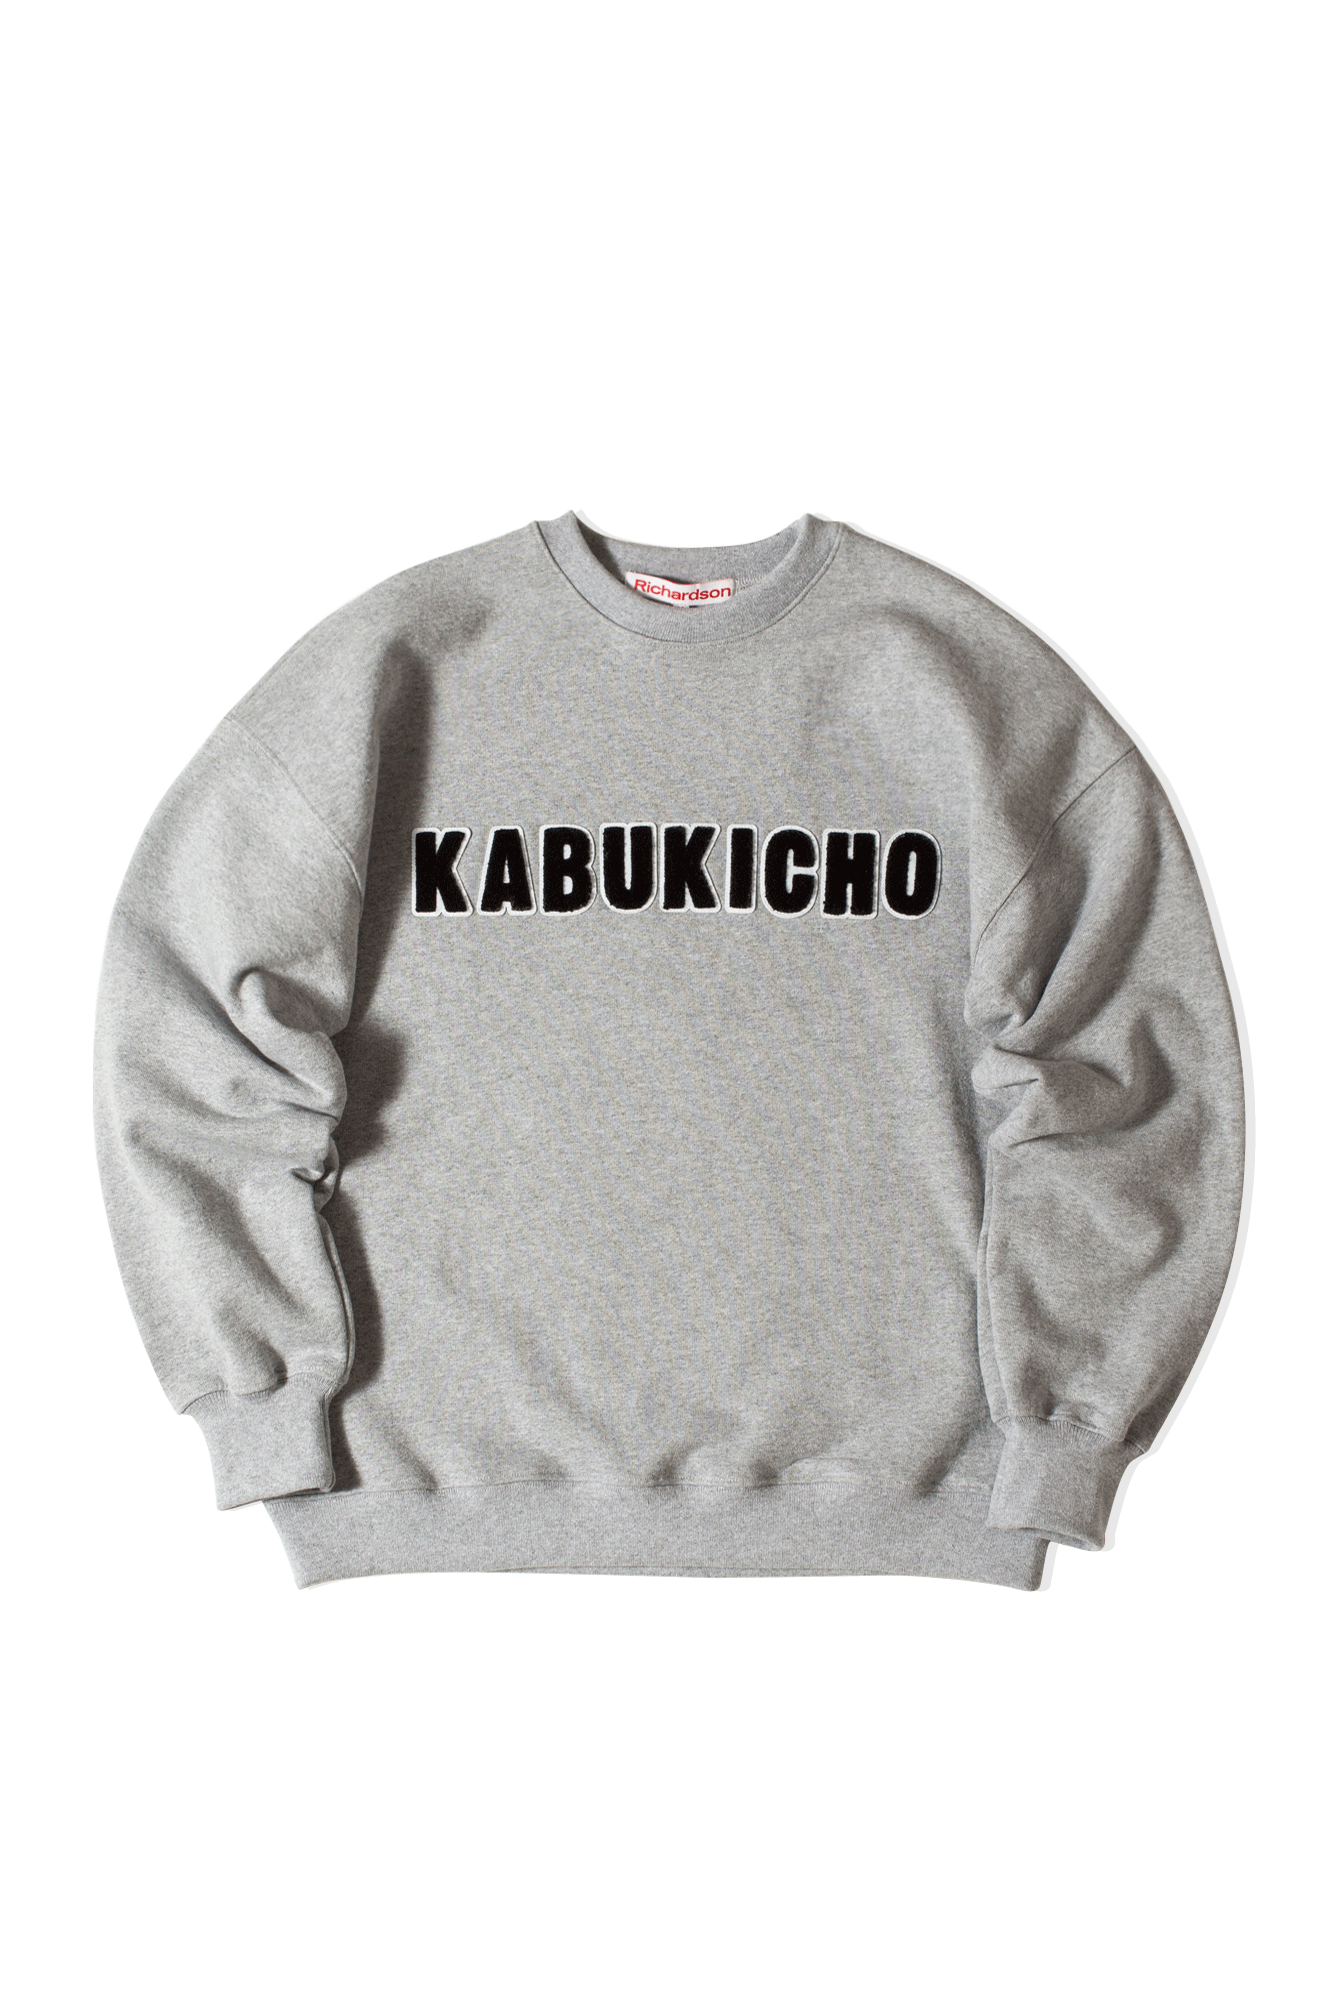 Richardson Mag Felpe girocollo District Crewneck Grigio FW20042#000#KBKGRY#M - One Block Down